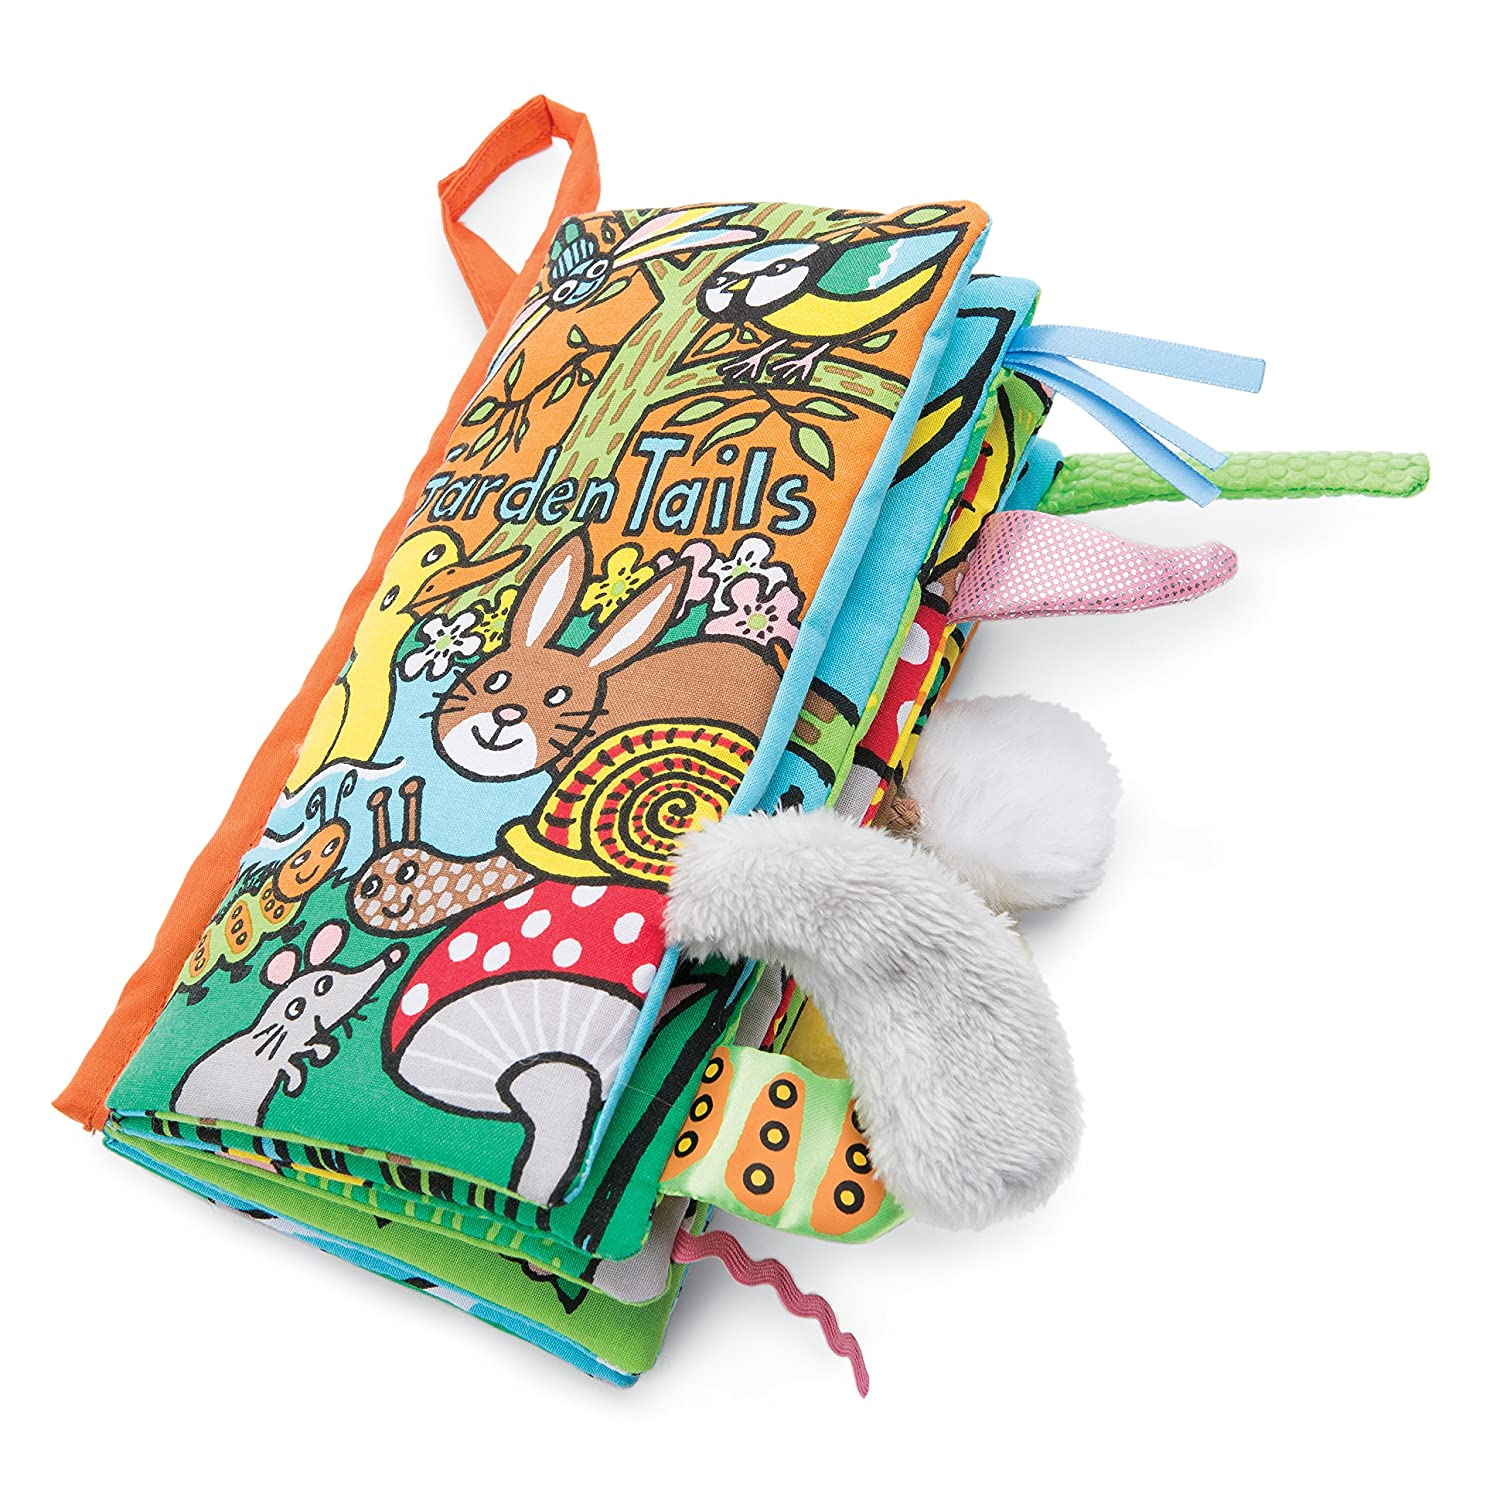 Puppy Tails Jellycat Soft Cloth Books